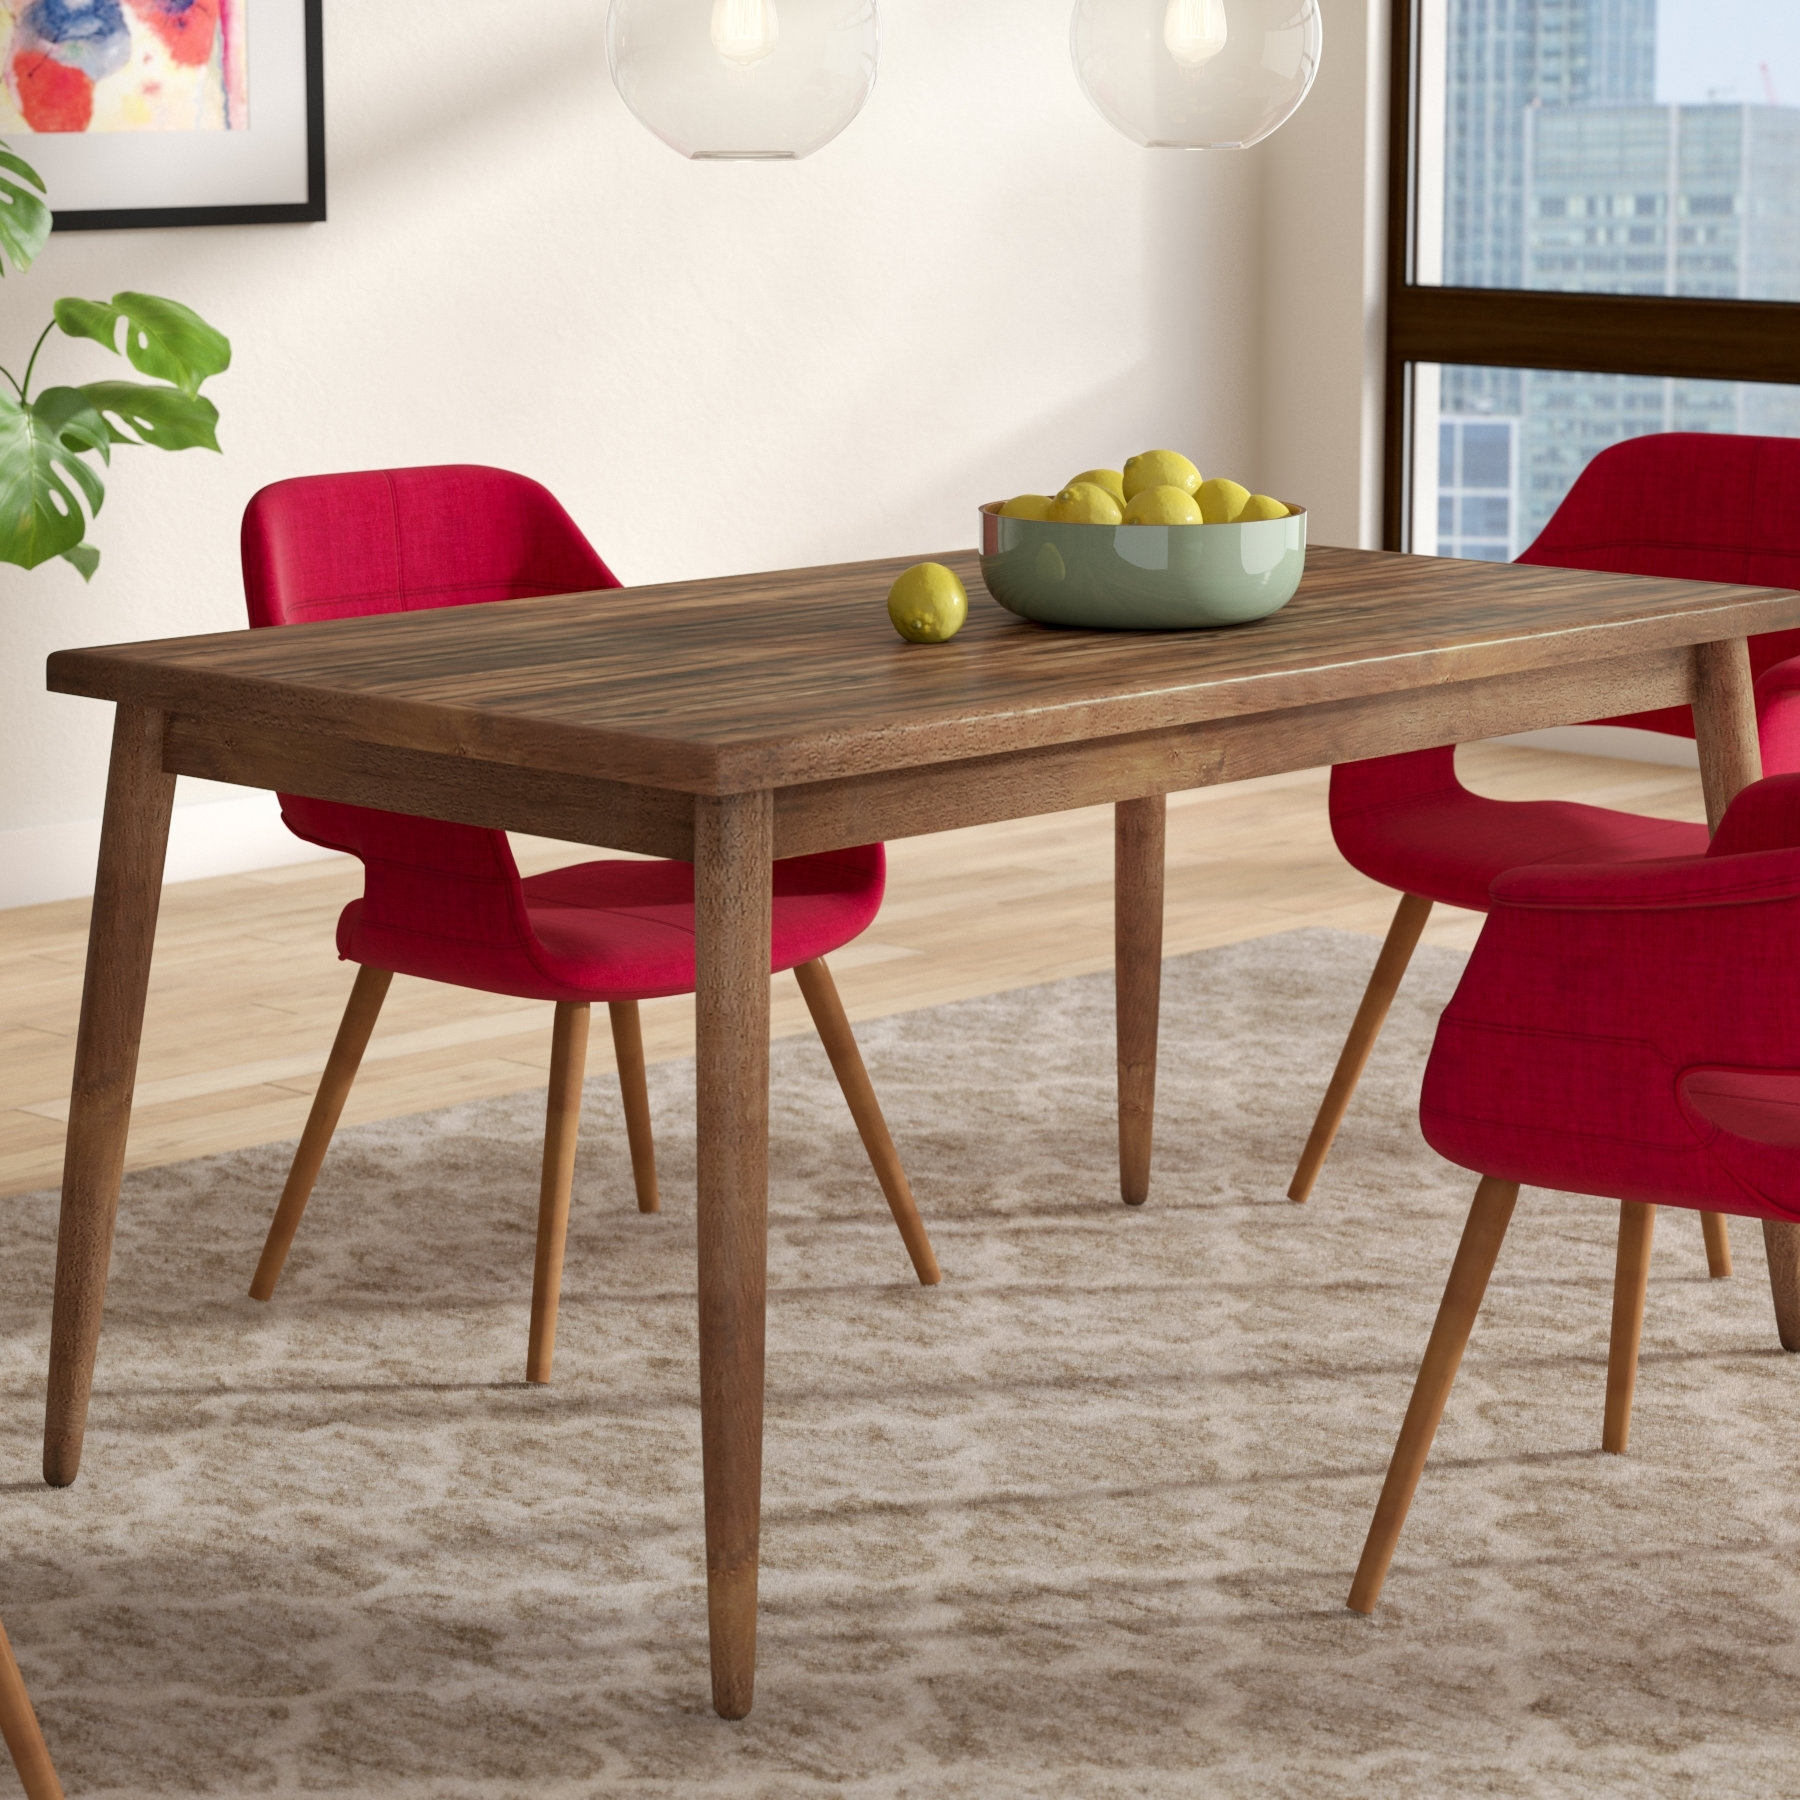 Langley Street Lydia Dining Table & Reviews | Wayfair With Regard To Most Recent Kirsten 5 Piece Dining Sets (Image 12 of 20)